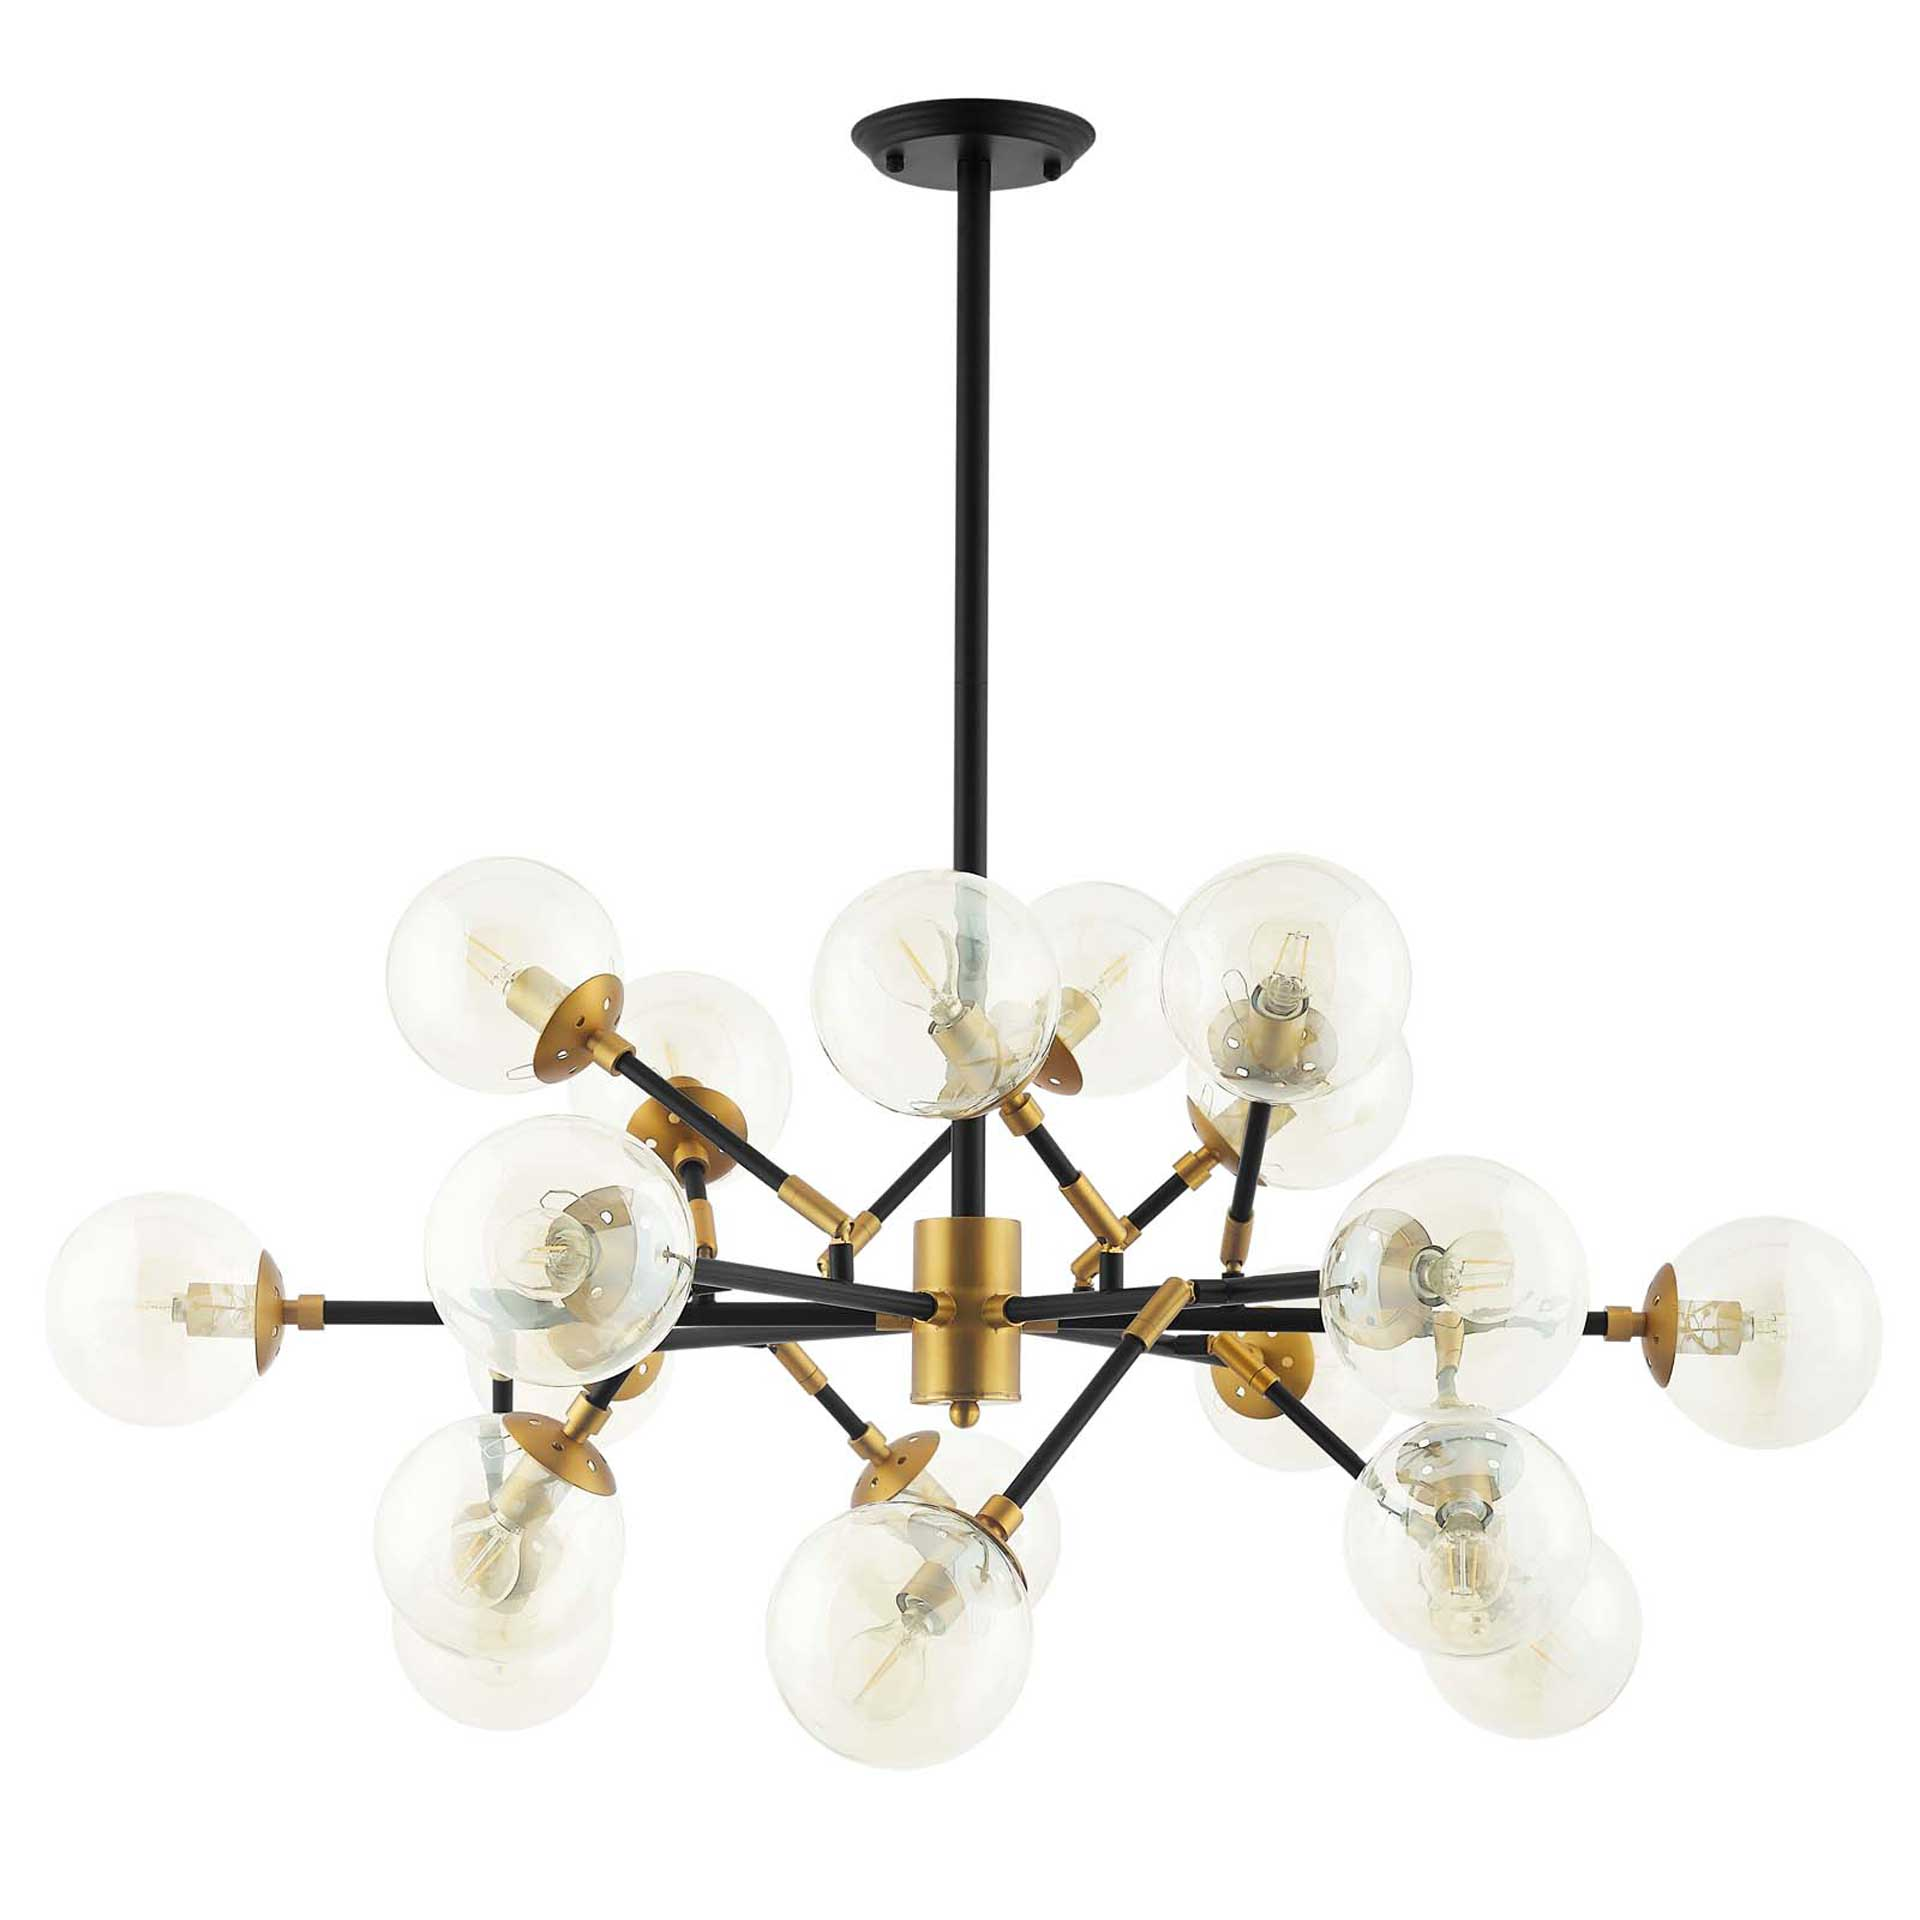 Selene 18 Light Pendant Chandelier Brass Gold/Black